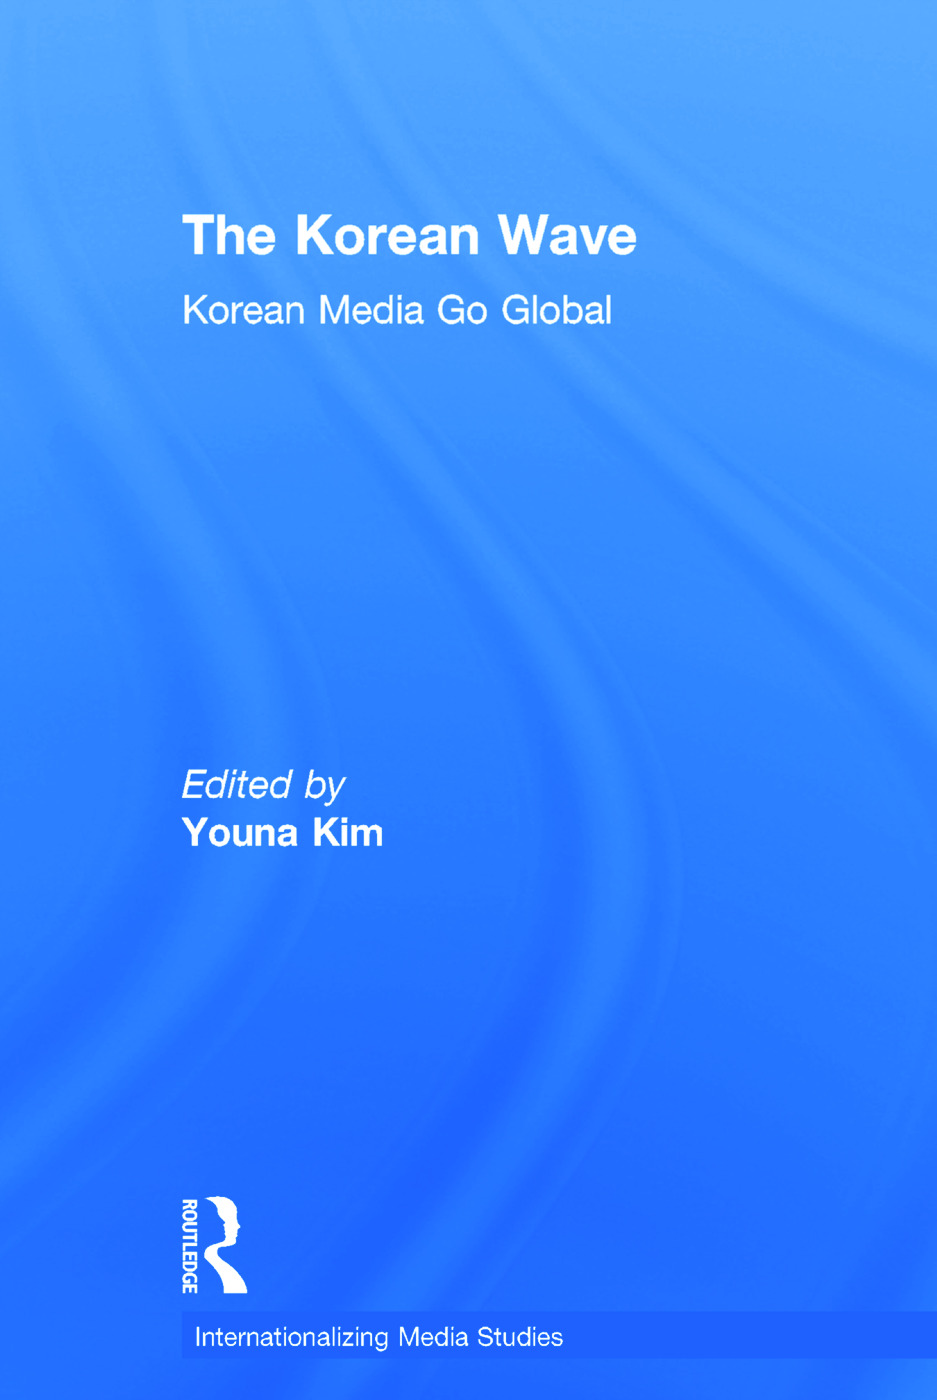 Negotiating identity and power in transnational cultural consumption: Korean American youths and the Korean Wave